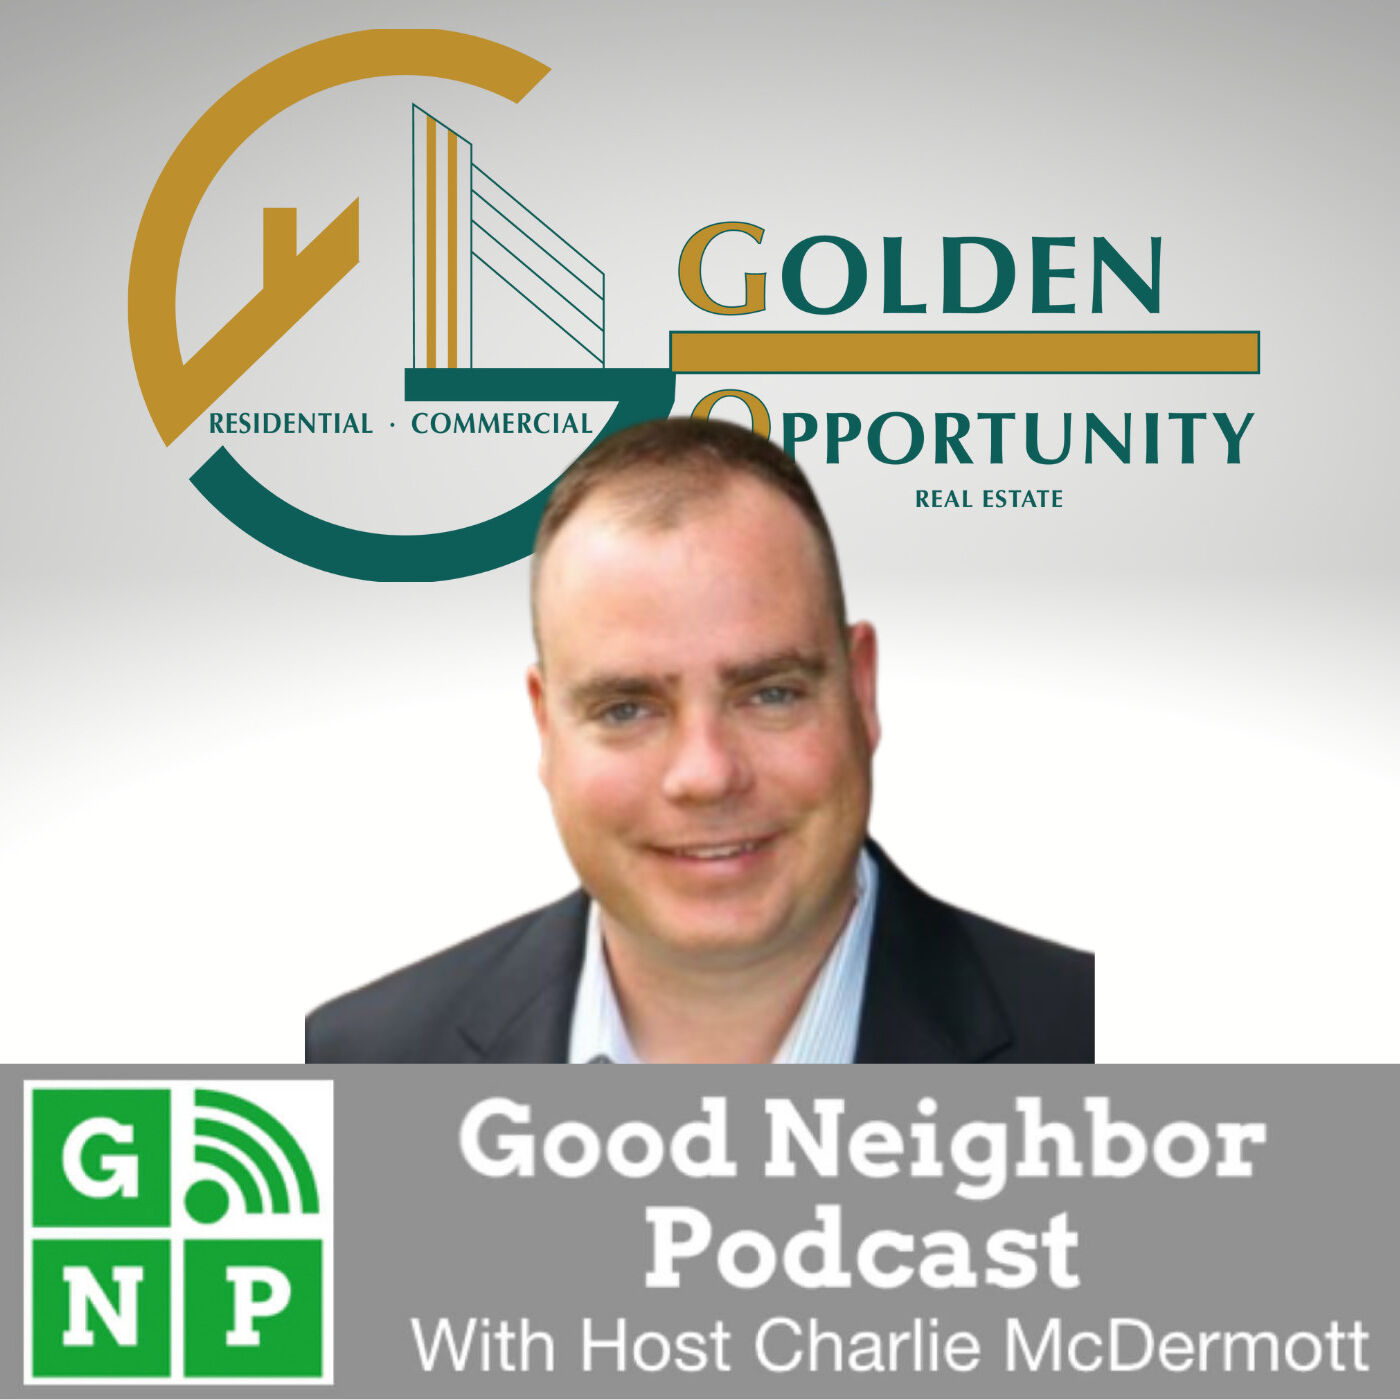 EP #537: Golden Opportunity Realty with Kevin Bundy